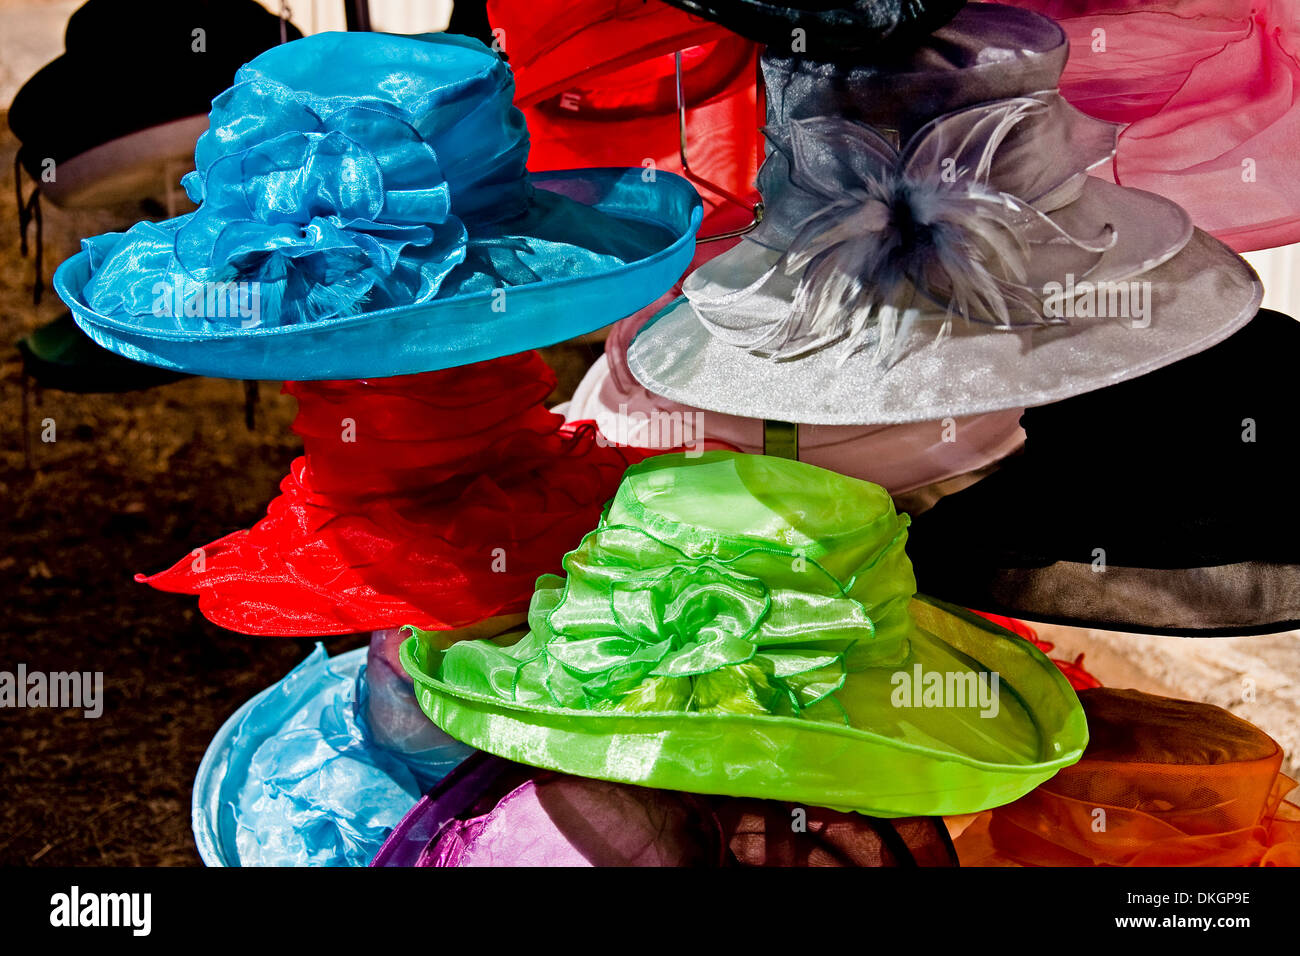 Brightly coloured and decorative women's hats at street market stall in city of Maryborough Queensland Australia - Stock Image